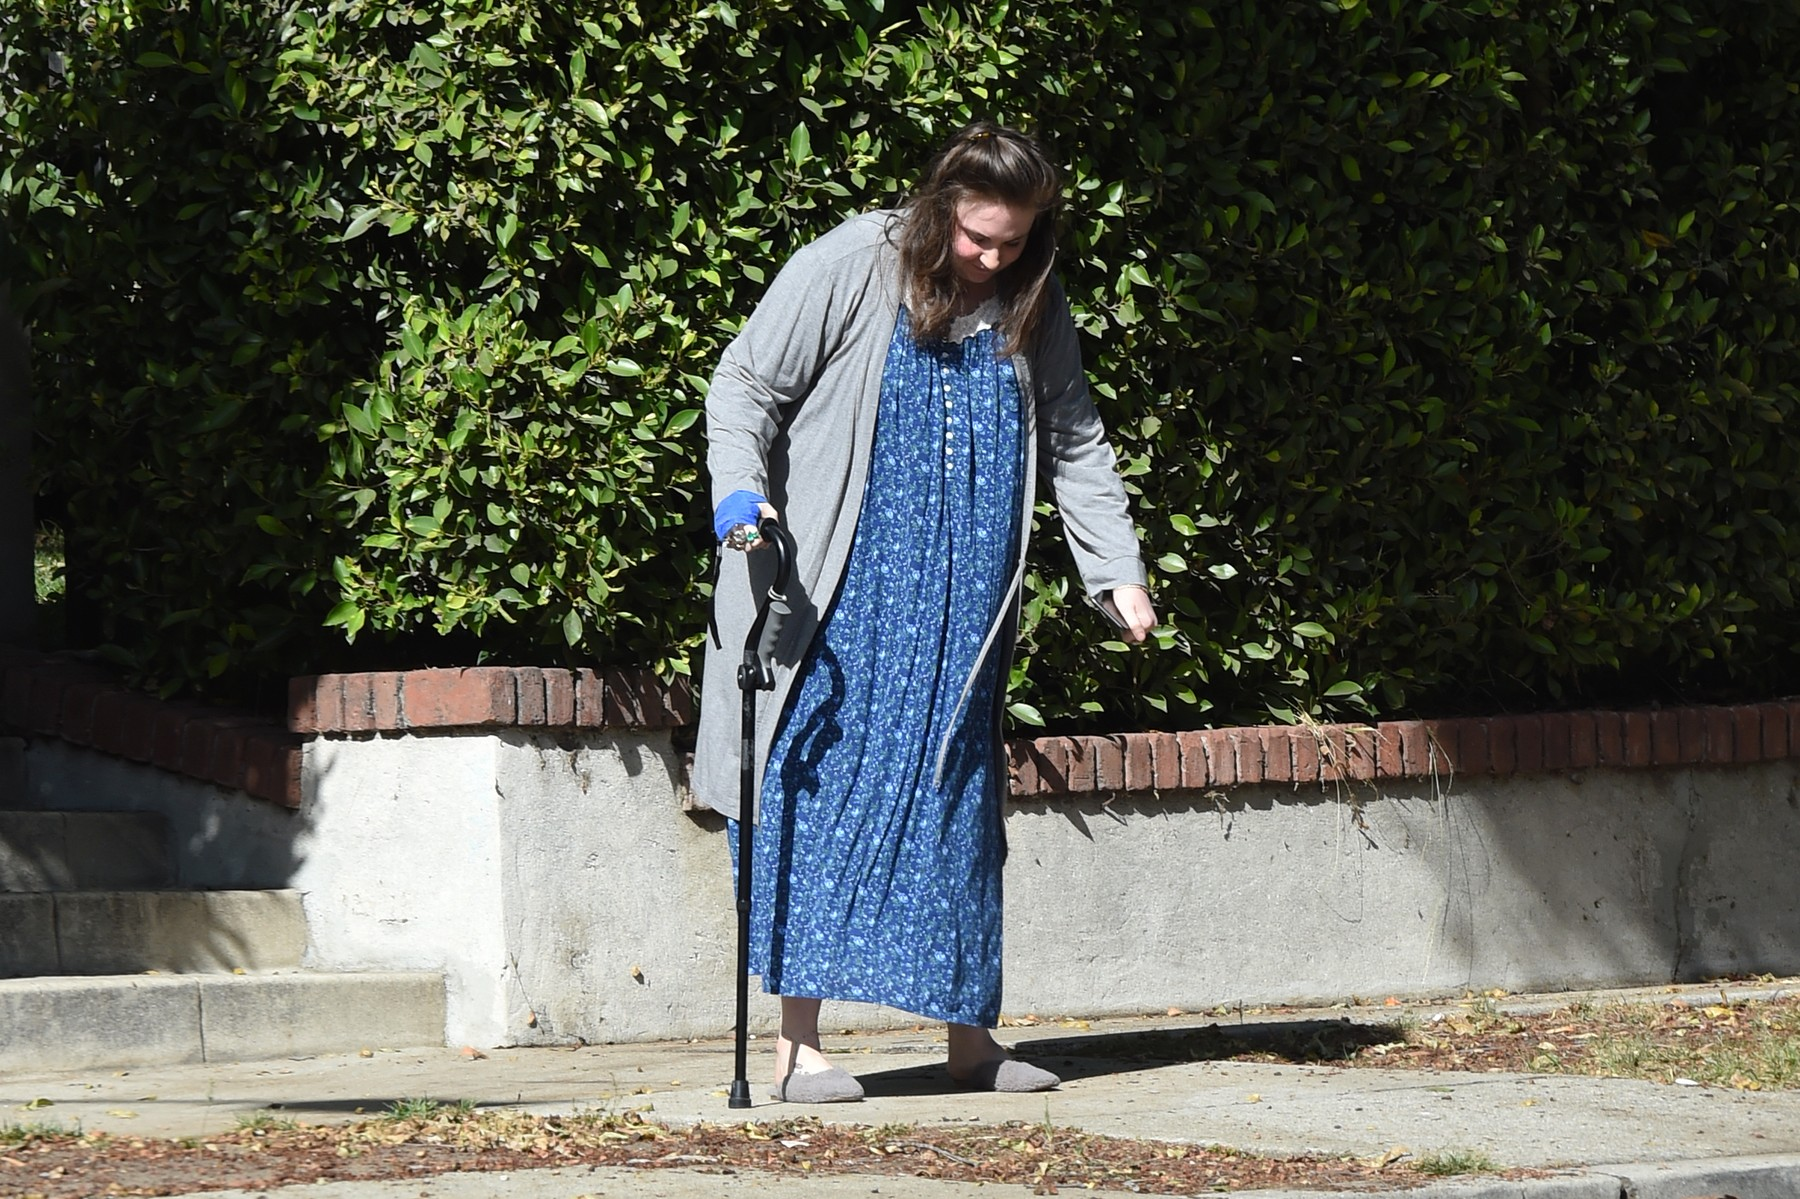 10/31/2019 EXCLUSIVE: Lena Dunham holds a cane with an apparently bandaged hand as she gingerly step out in Los Angeles. The 33 year old actress is wearing grey slippers, a long grey jacket and a blue nightgown., Image: 480194941, License: Rights-managed, Restrictions: Exclusive NO usage without agreed price and terms. Please contact sales@theimagedirect.com, Model Release: no, Credit line: TheImageDirect.com / The Image Direct / Profimedia